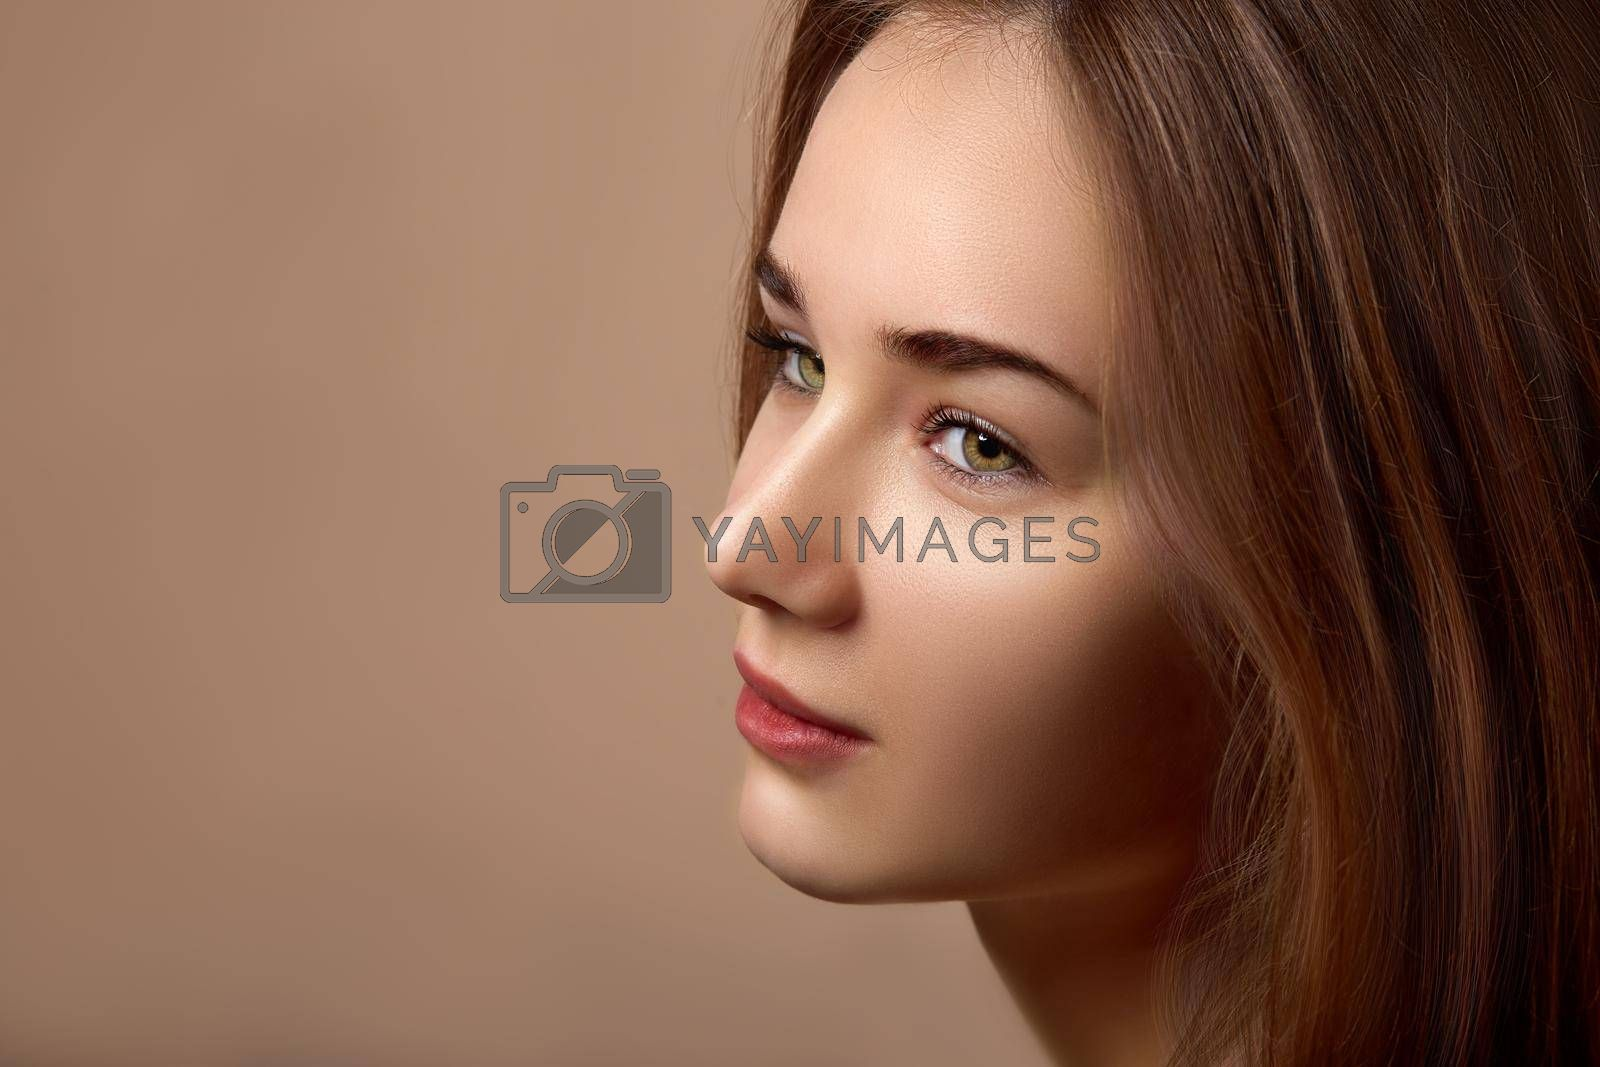 Portrait of a woman with a beautiful eye color. Sensual images of woman concept.